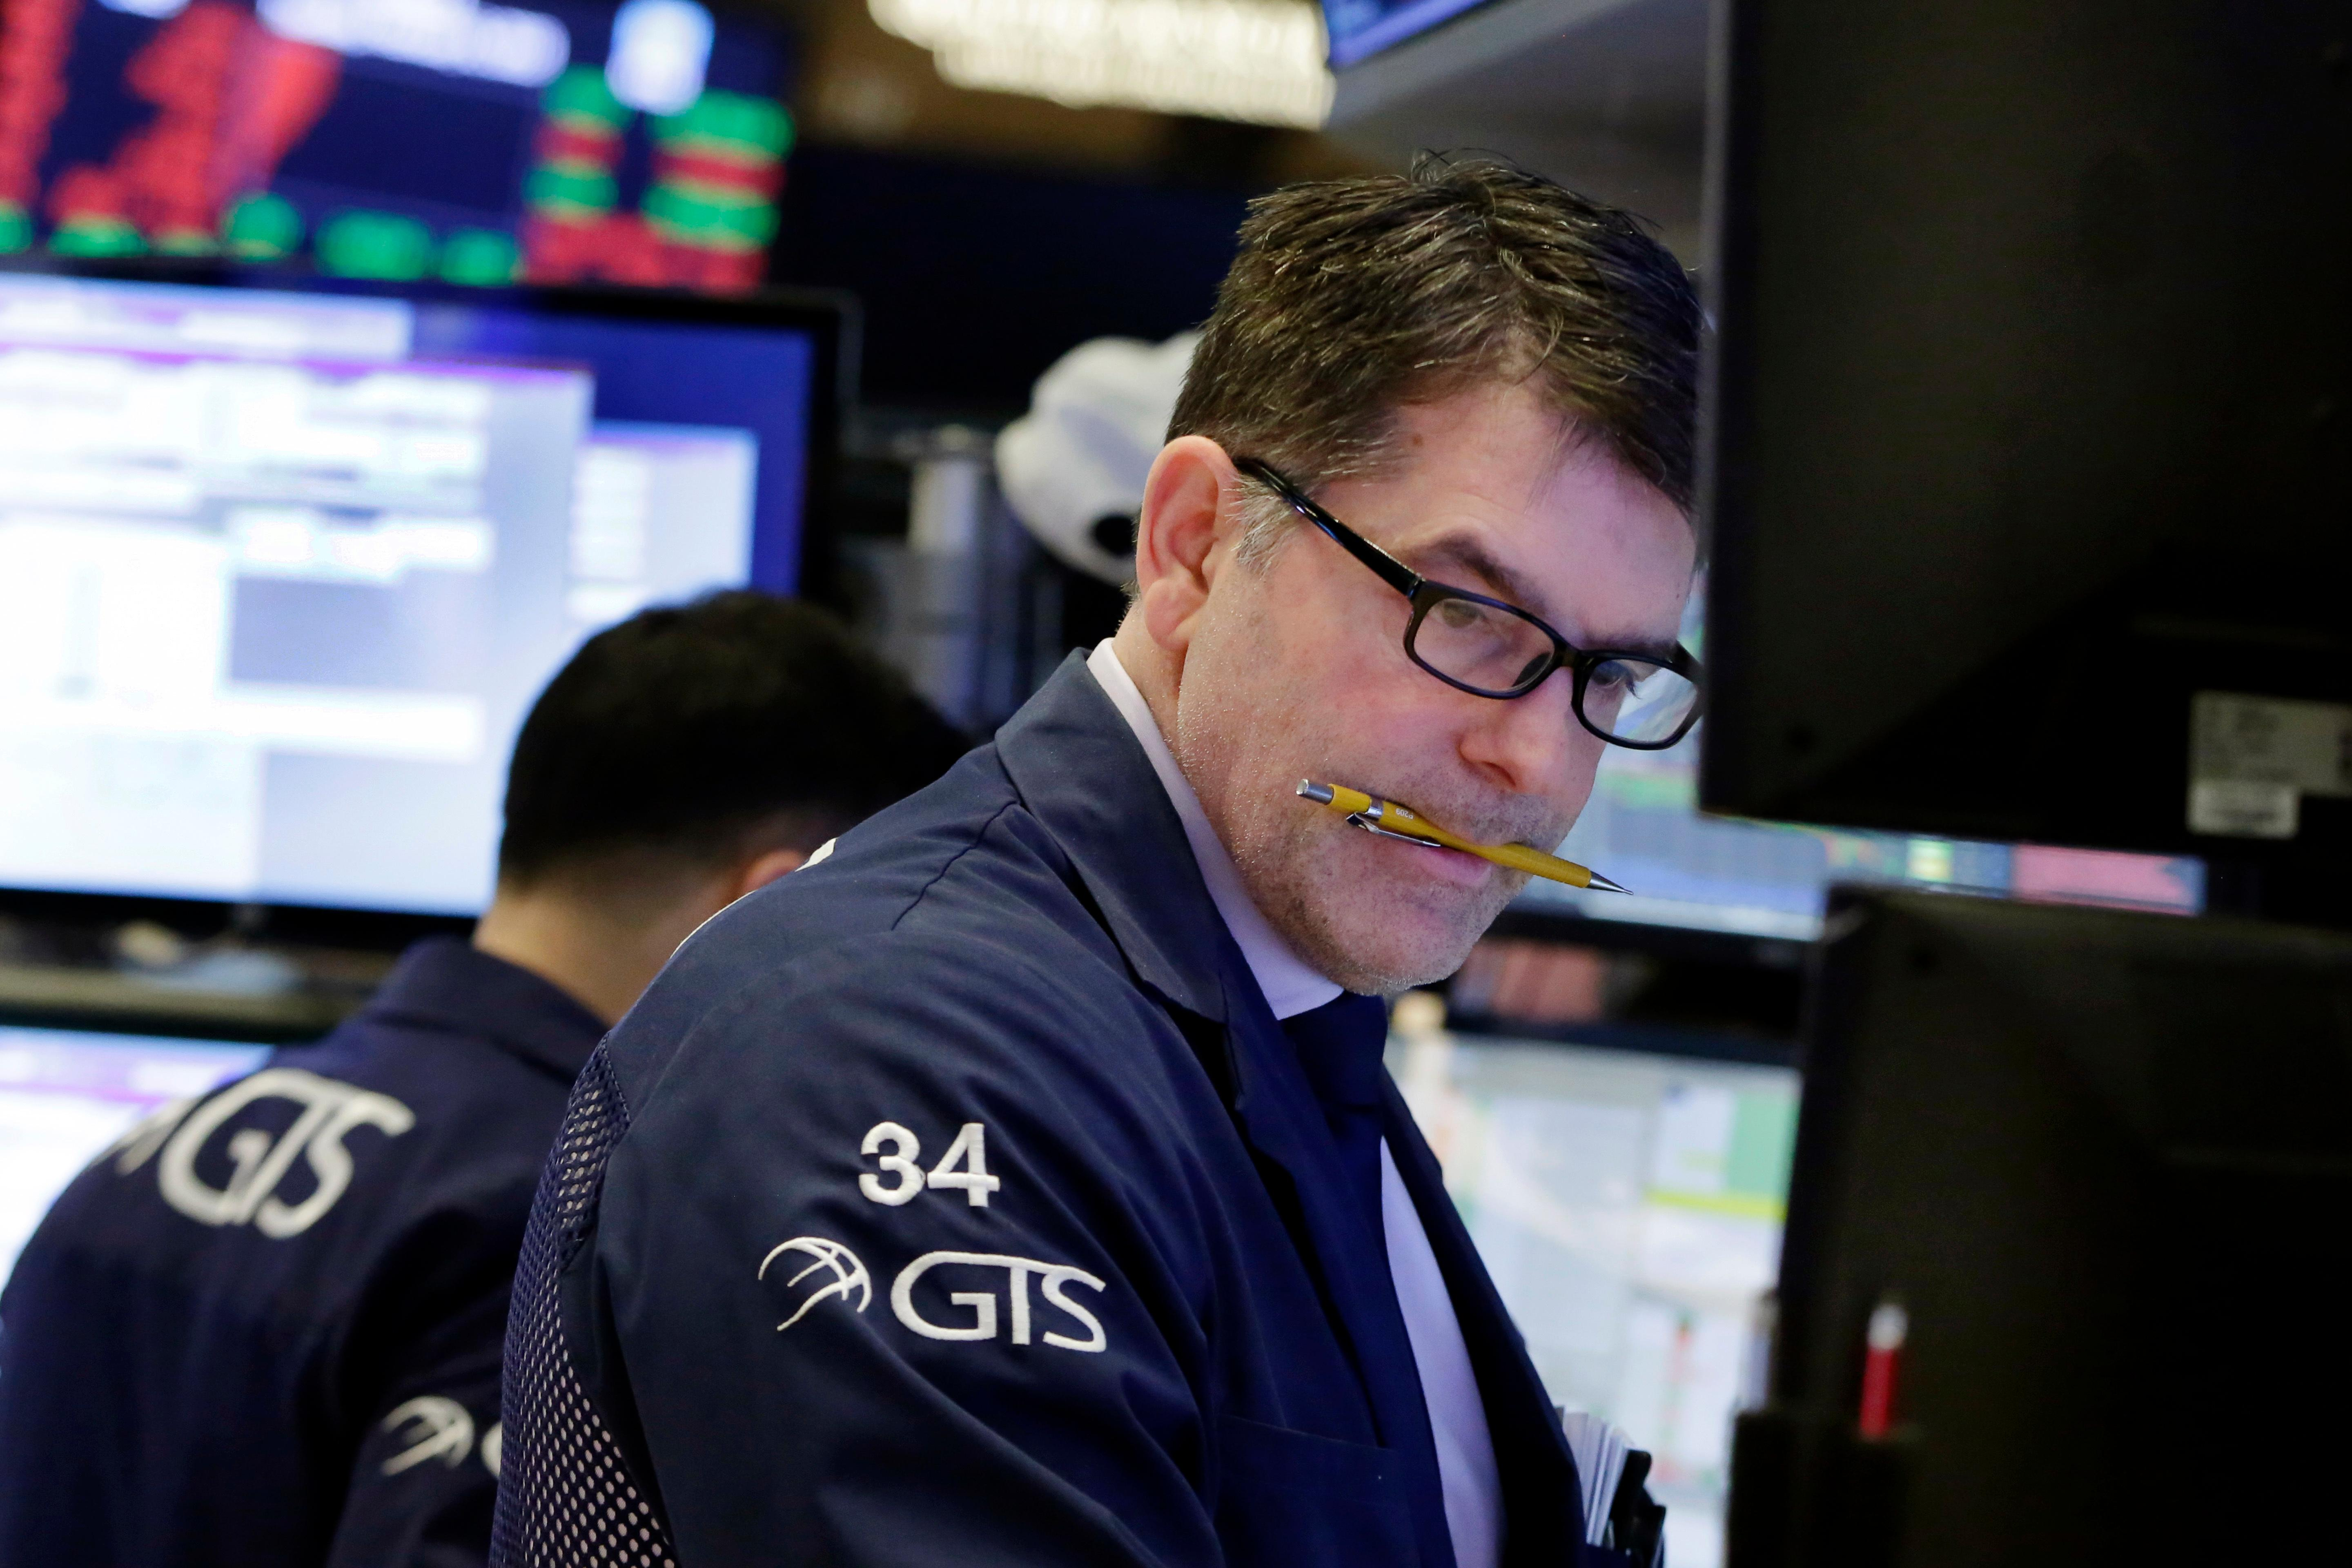 Specialist David Haubner works on the floor of the New York Stock Exchange, Tuesday, Feb. 6, 2018. The Dow Jones industrial average fell as much as 500 points in early trading, bringing the index down 10 percent from the record high it reached on Jan. 26. (AP Photo/Richard Drew)<p></p>